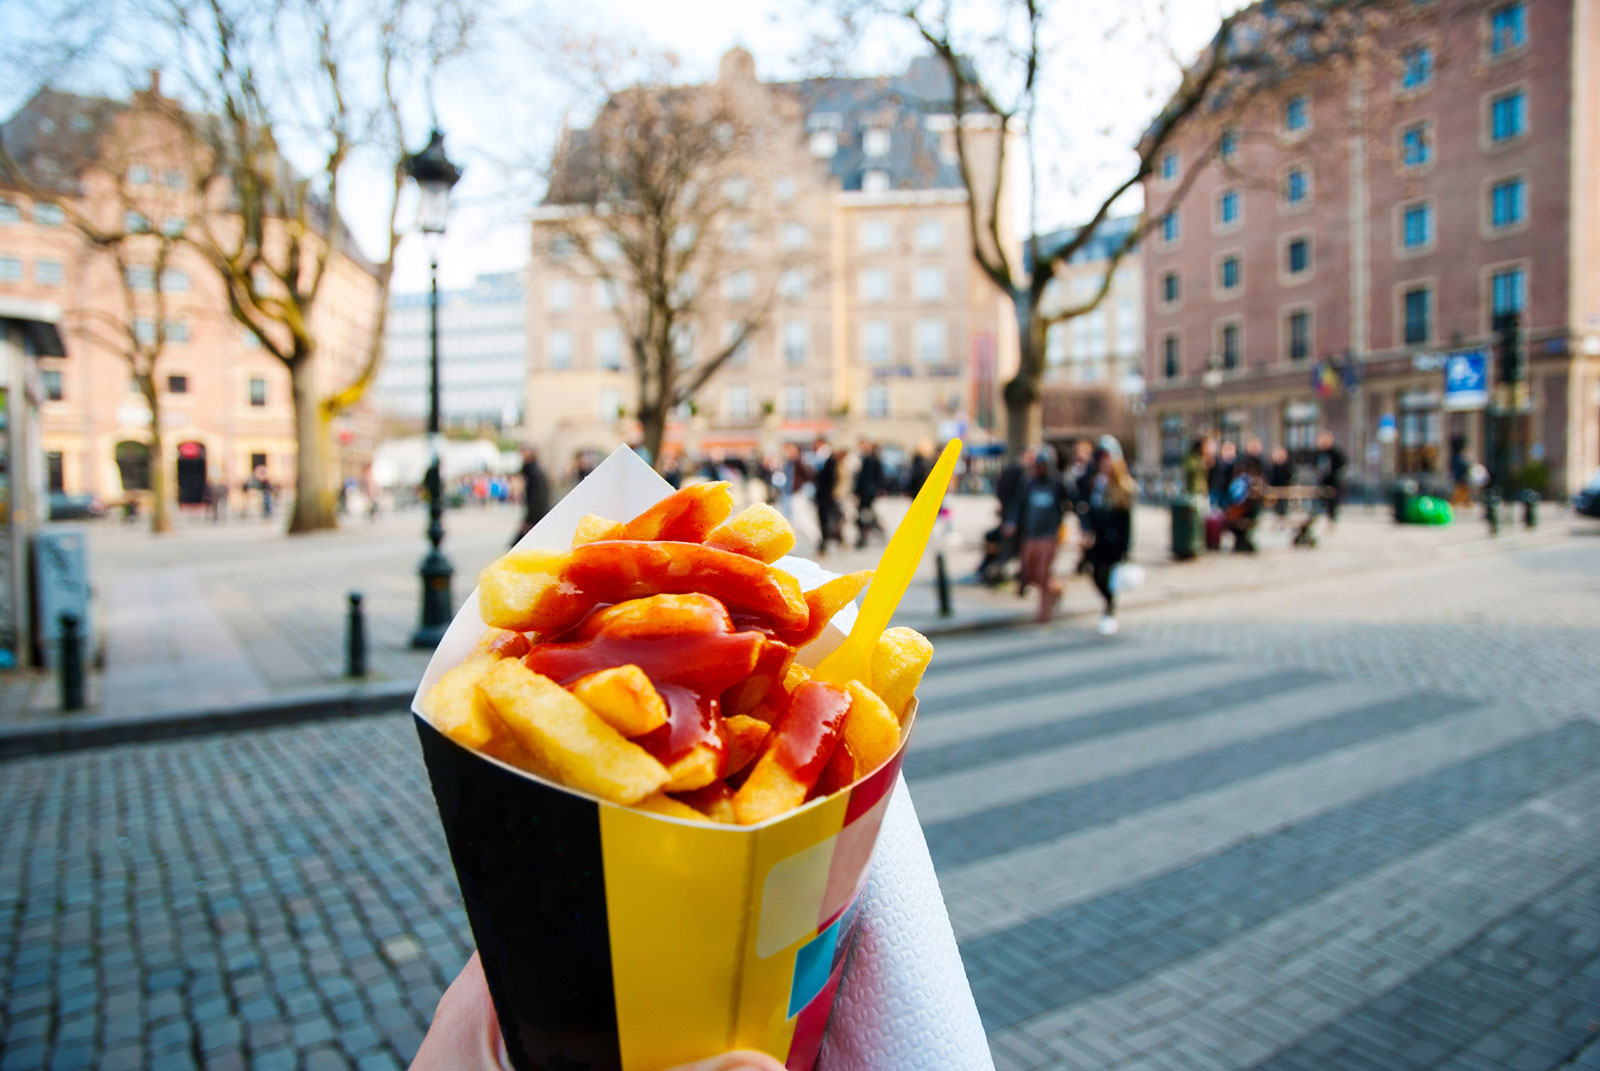 Frites - popular street food in Belgium.